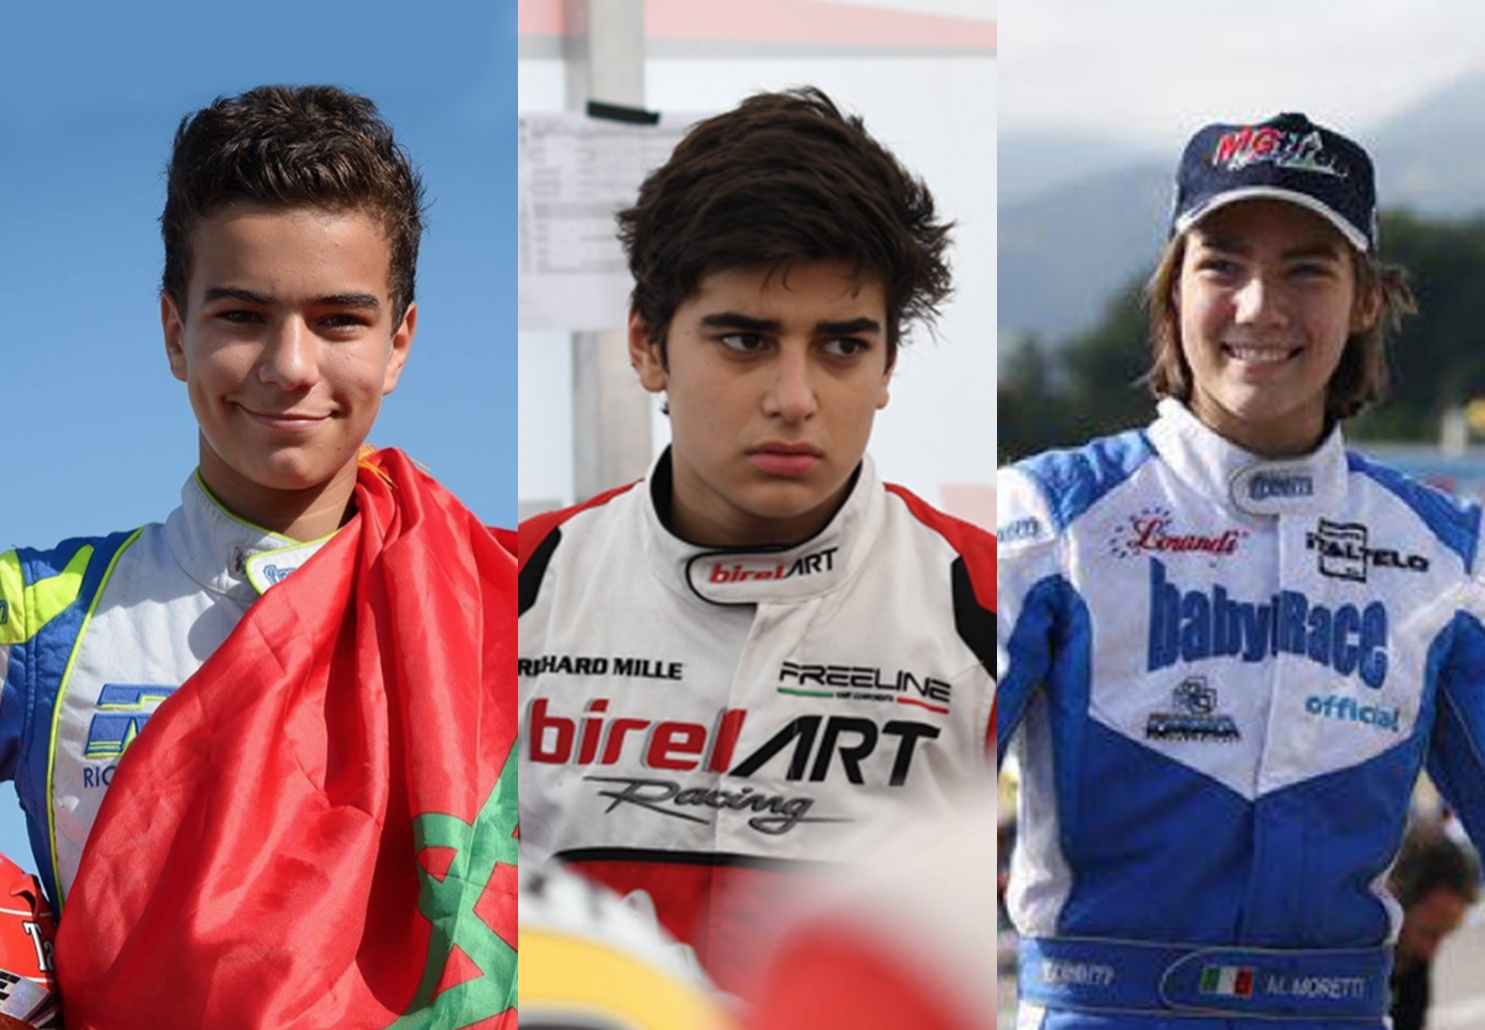 [TEAM NEWS] SILBERPFEIL ENEGY DUBAI EXPANDS F4UAE TEAM WITH THREE NEW DRIVERS